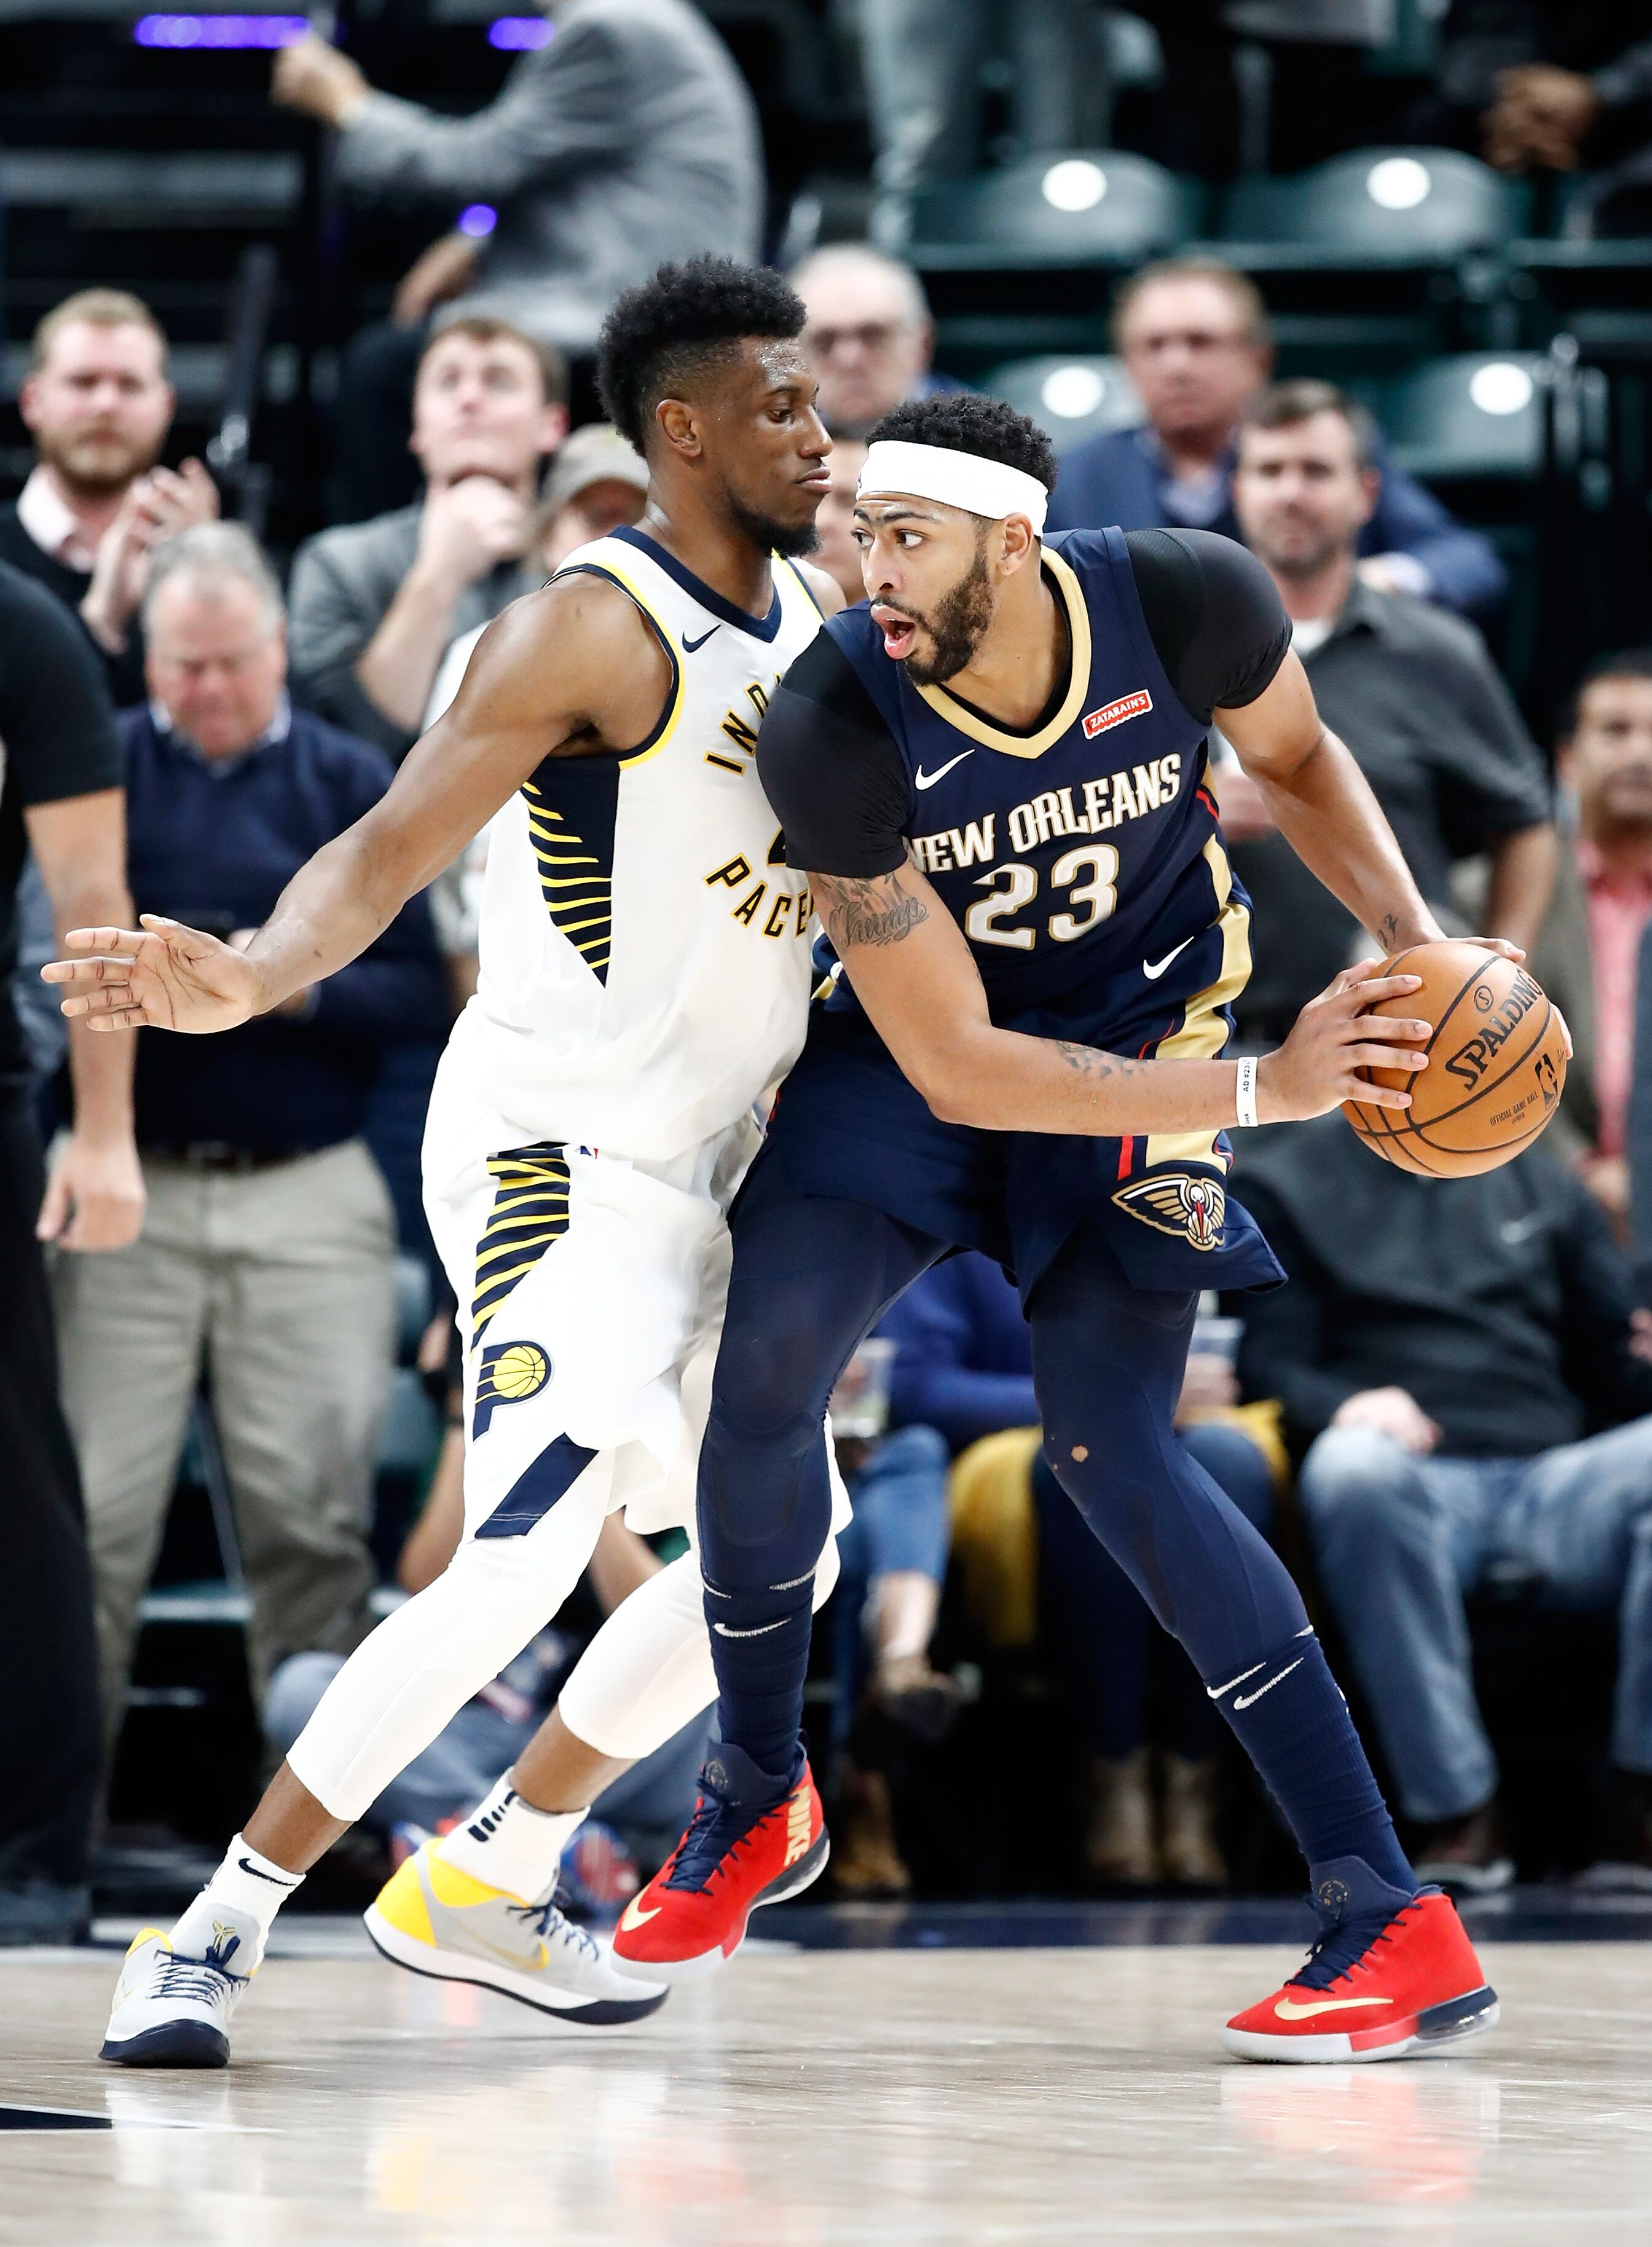 871460424-new-orleans-pelicans-v-indiana-pacers.jpg